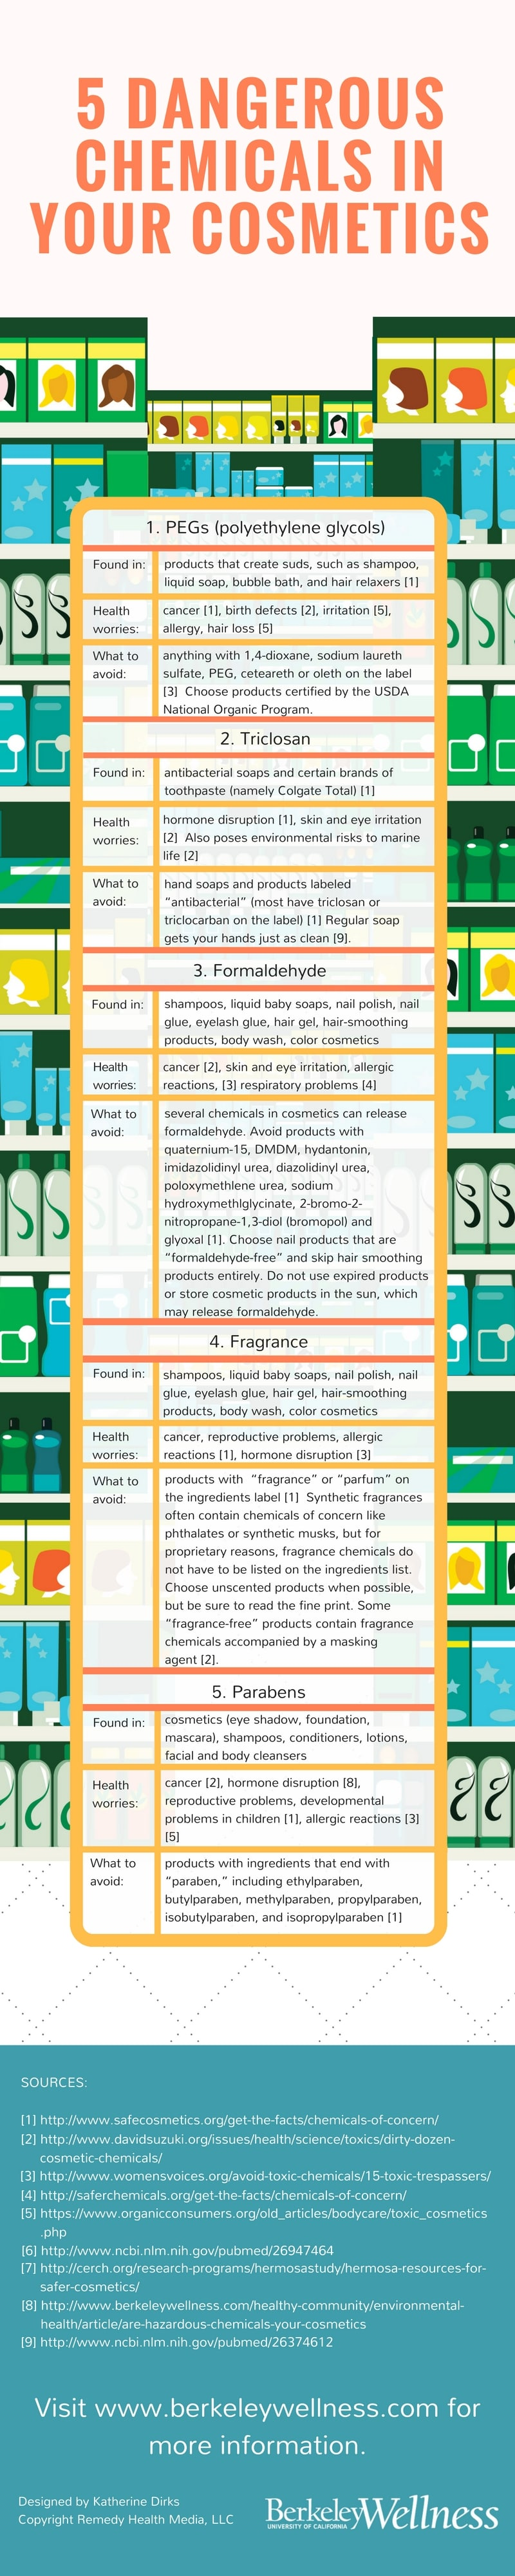 There Is Growing Concern Over Potentially Hazardous Chemicals In Cosmetics And Personal Care Products Espec Dangerous Chemicals In Cosmetics Skin Care Routine